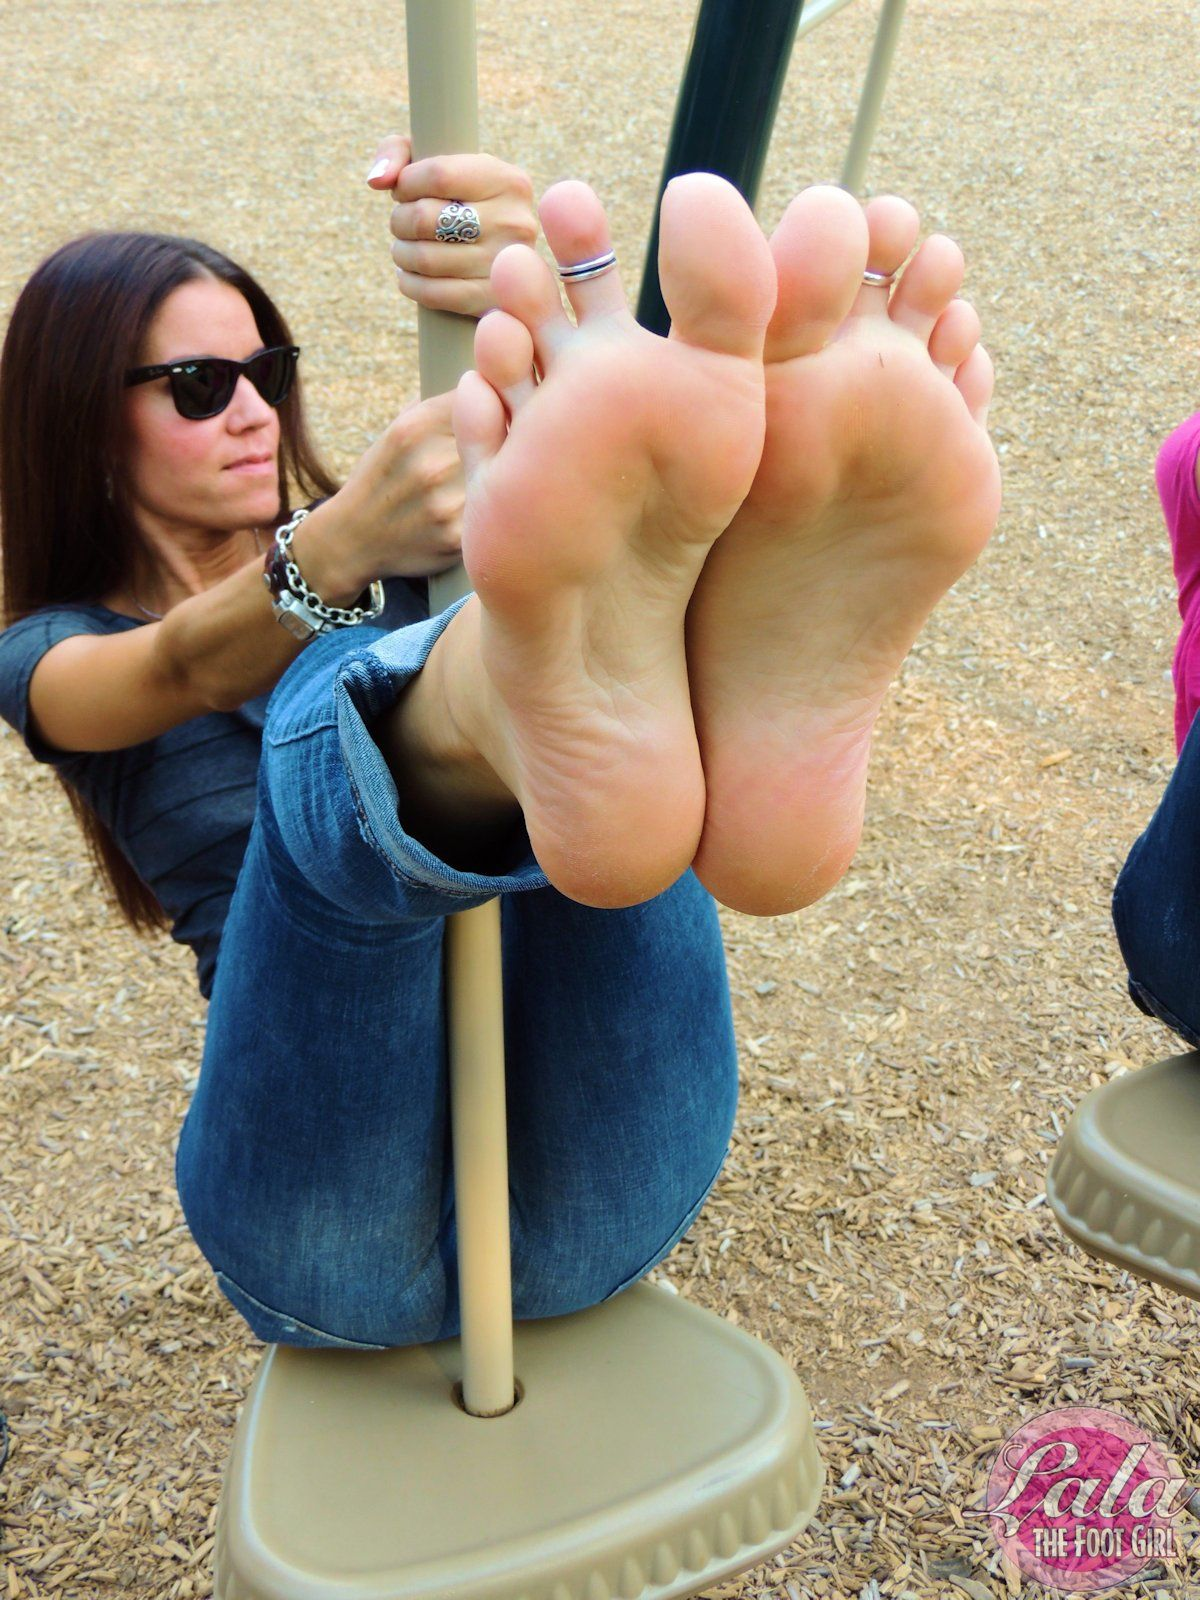 Beautiful barefoot girls 13 leslie gibson 1